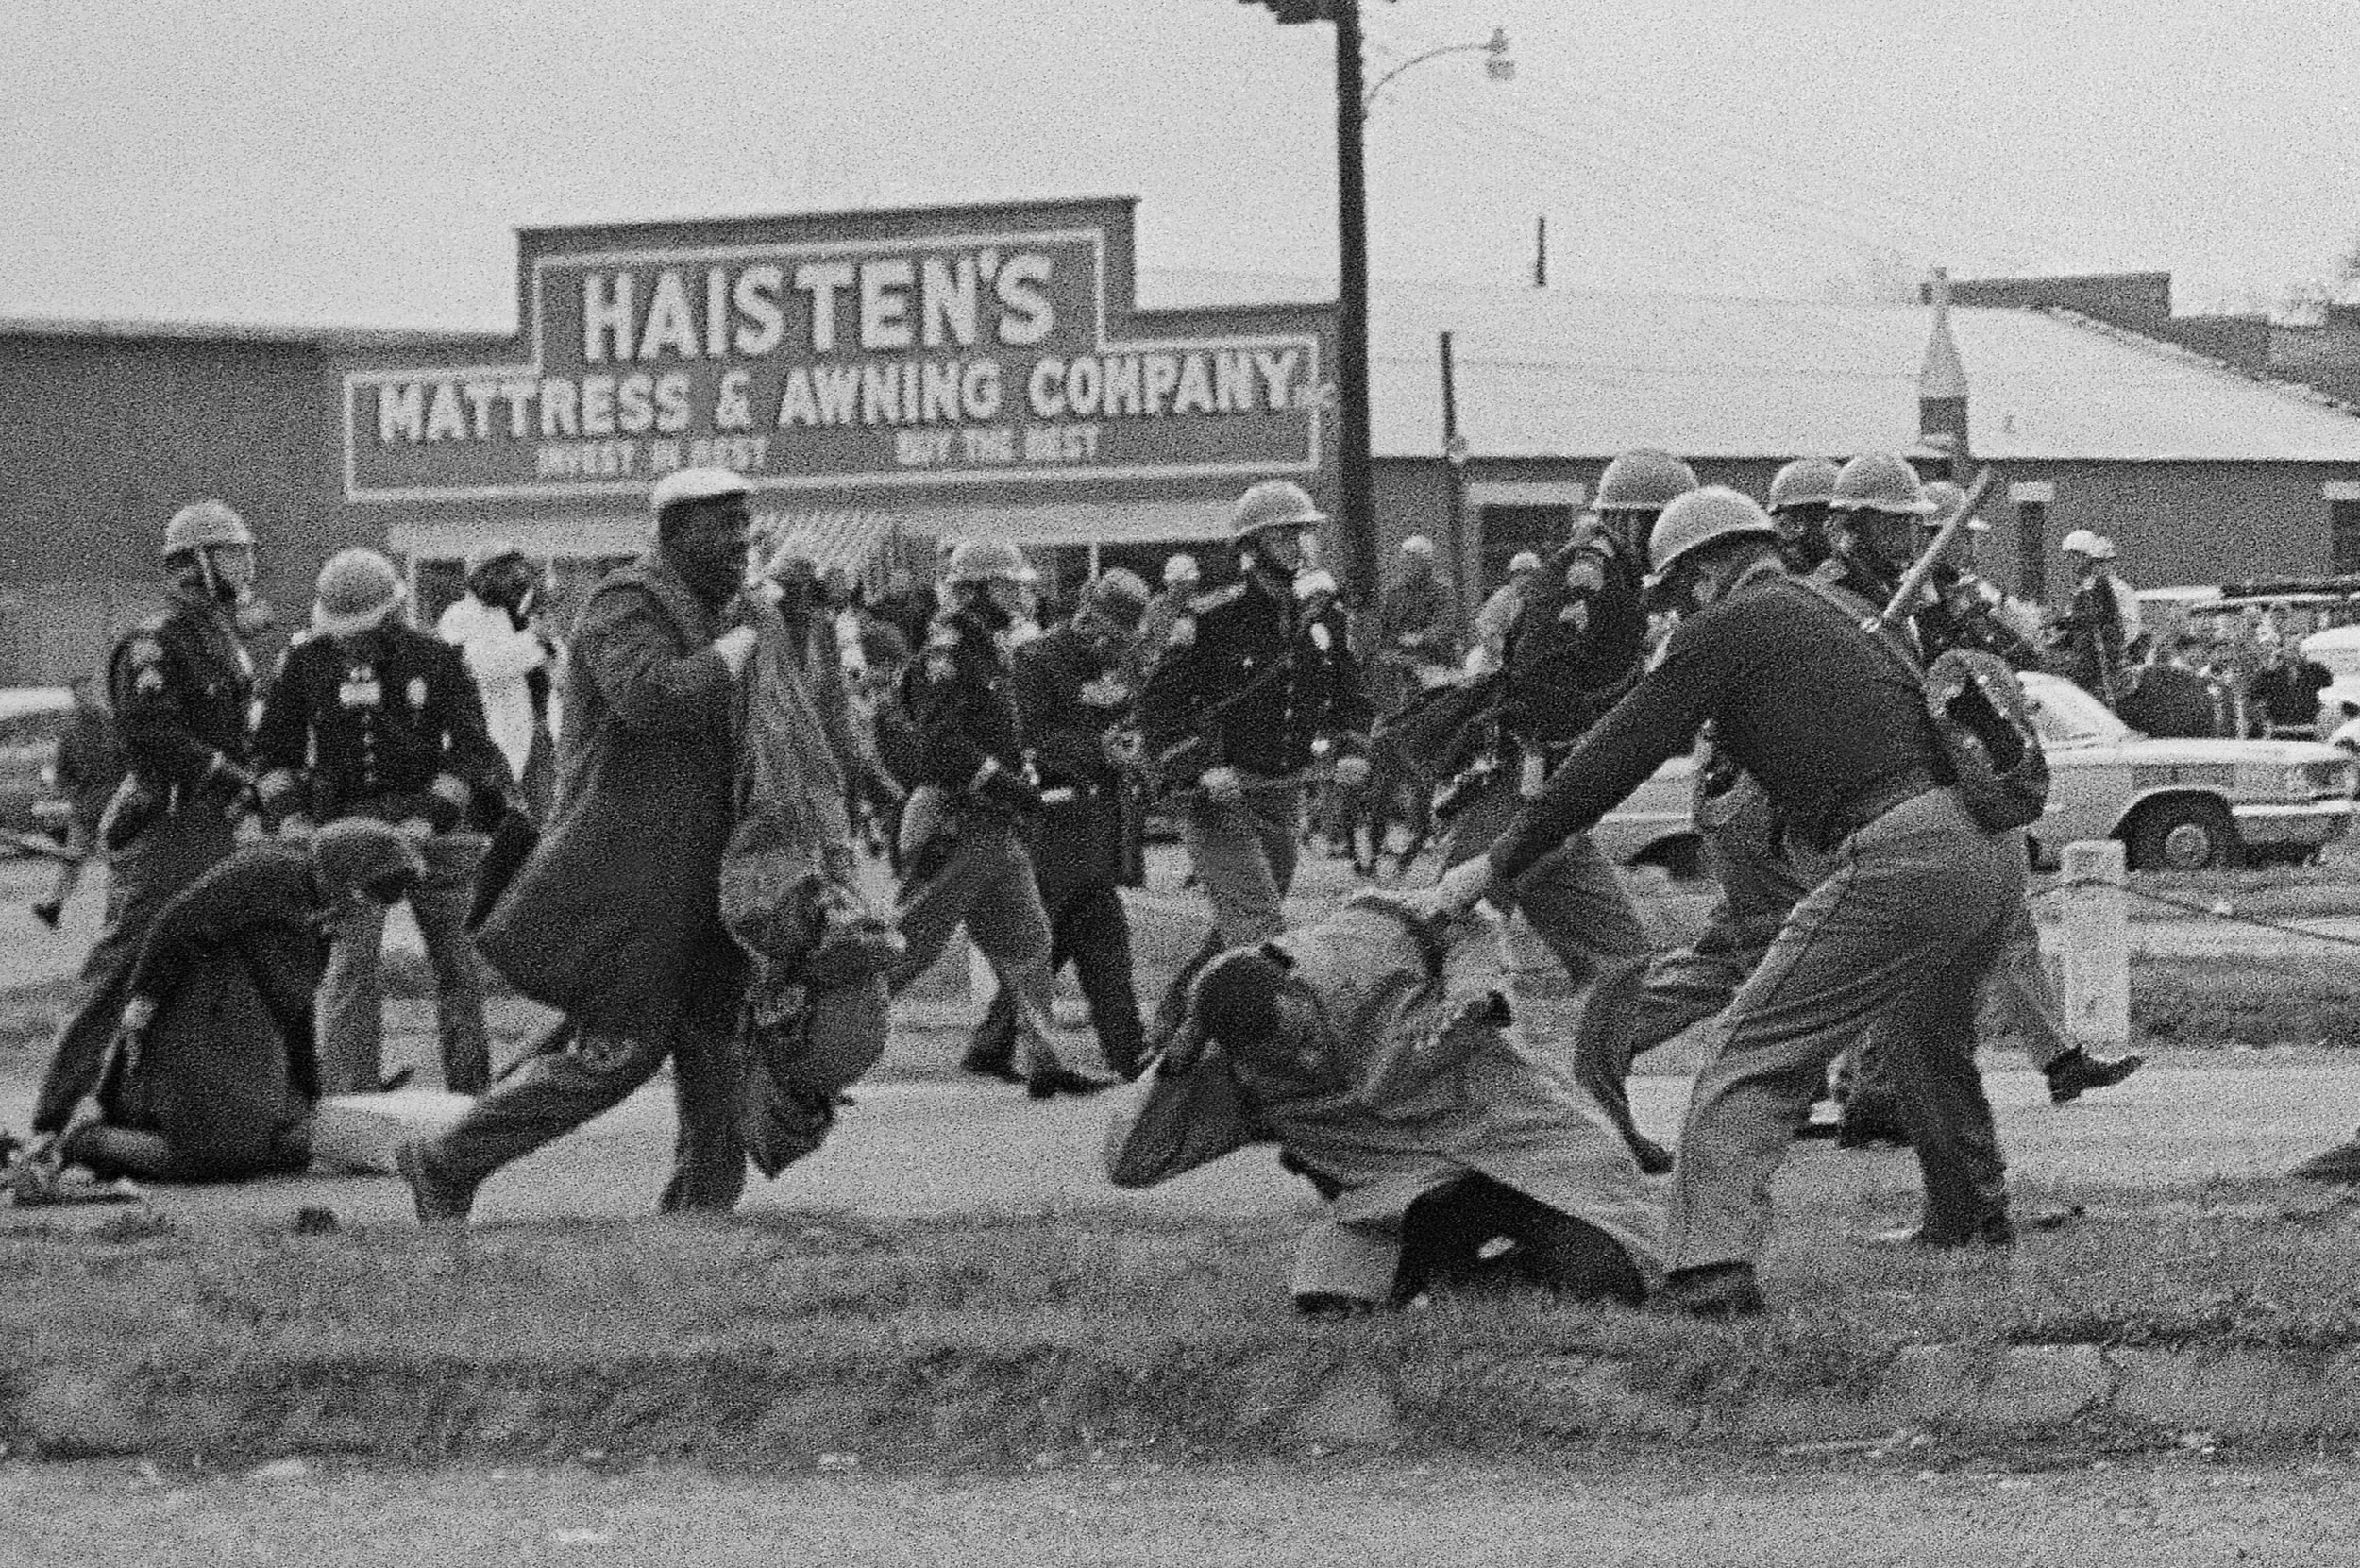 PAGE 92: DURING THE FIRST ATTEMPT TO MARCH FROM SELMA TO MONTGOMERY, SCLC FIELD DIRECTOR HOSEA WILLIAMS AND SNCC CHAIRMAN JOHN LEWIS LED MORE THAN 500 DEMONSTRATORS ACROSS THE EDMOND PETTIS BRIDGE ON MARCH 7, 1965. THE CROWD WAS MET WITH BLOODSHED AS STATE TROOPERS AND POLICE OFFICERS SWUNG BILLY CLUBS AND TRAMPLED AND TEAR GASSED MALE AND FEMALE PROTESTORS. LEWIS IS PICTURED RECEIVING BLOWS TO THE HEAD AND BODY (PERMISSION OF THE ASSOCIATED PRESS).